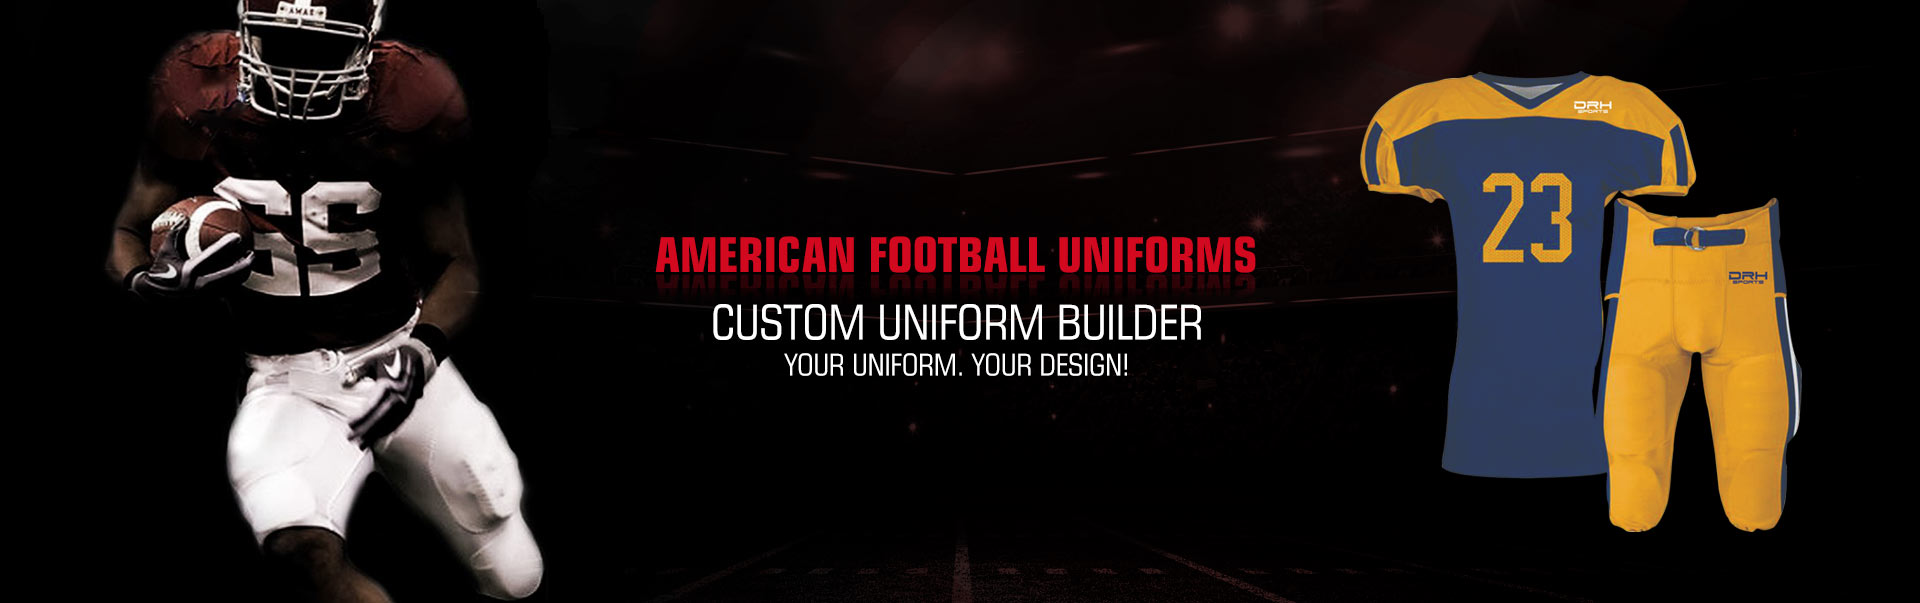 American Football Uniform Wholesaler, Suppliers in Nakhodka